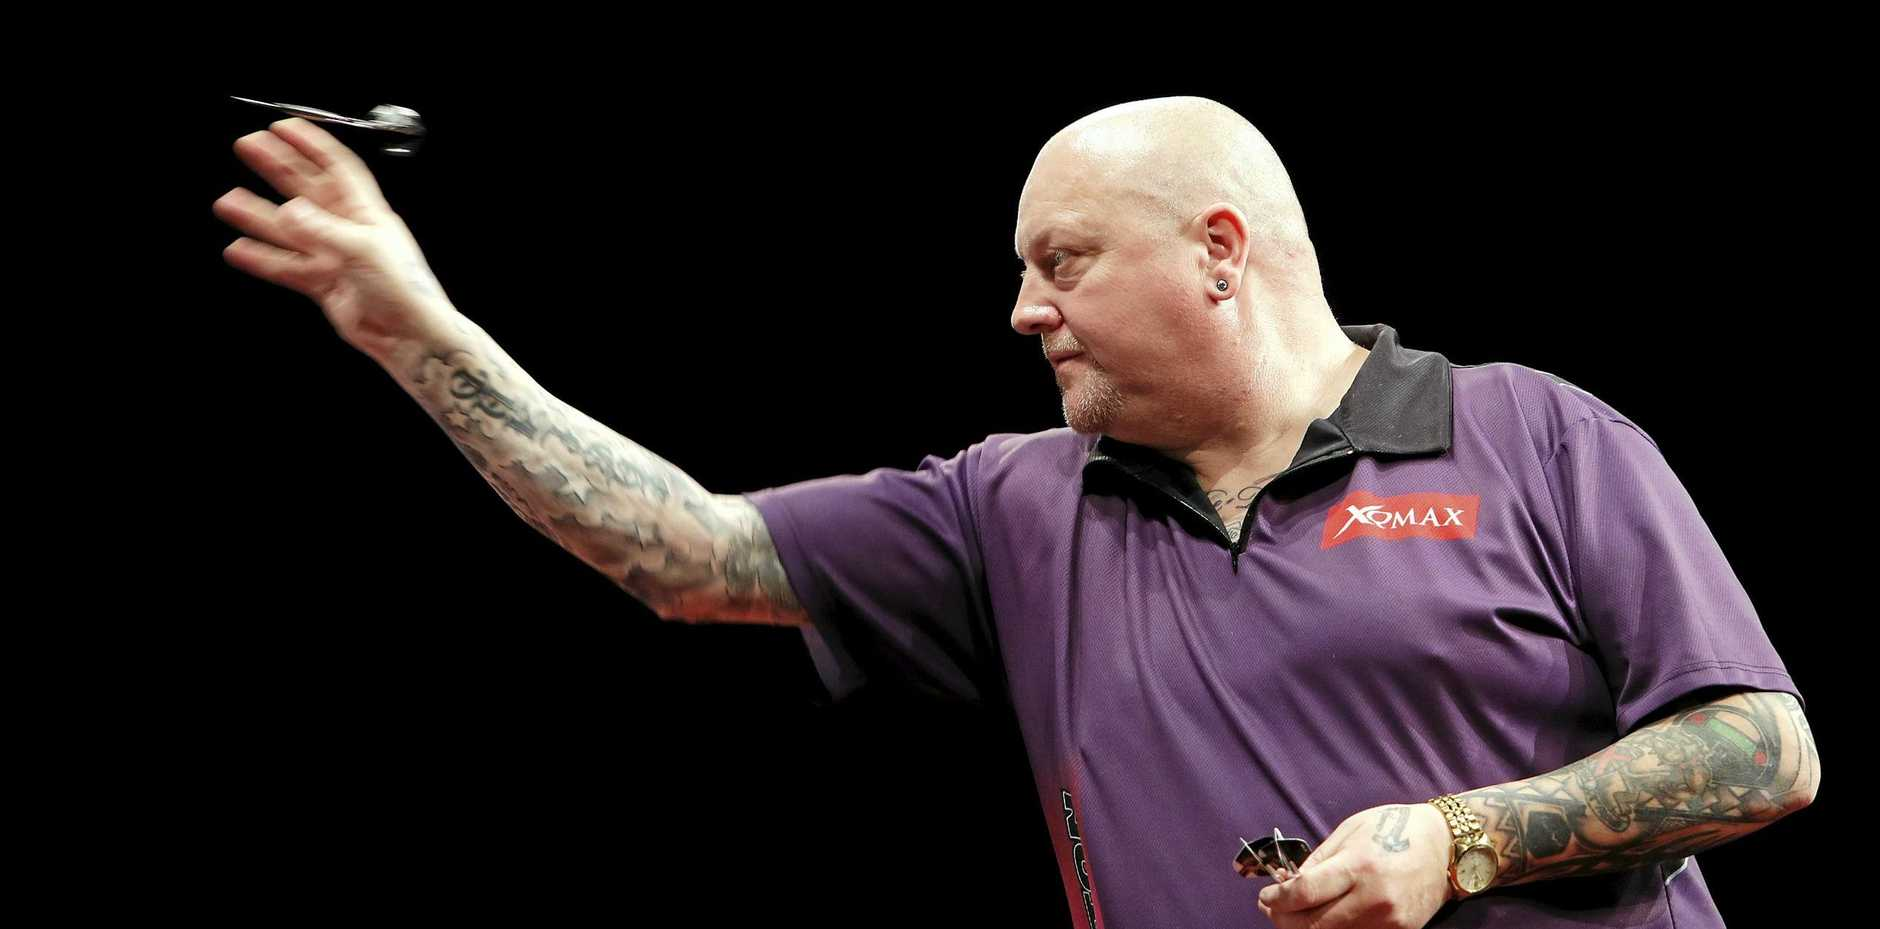 Andy Hamilton in action in Brisbane.